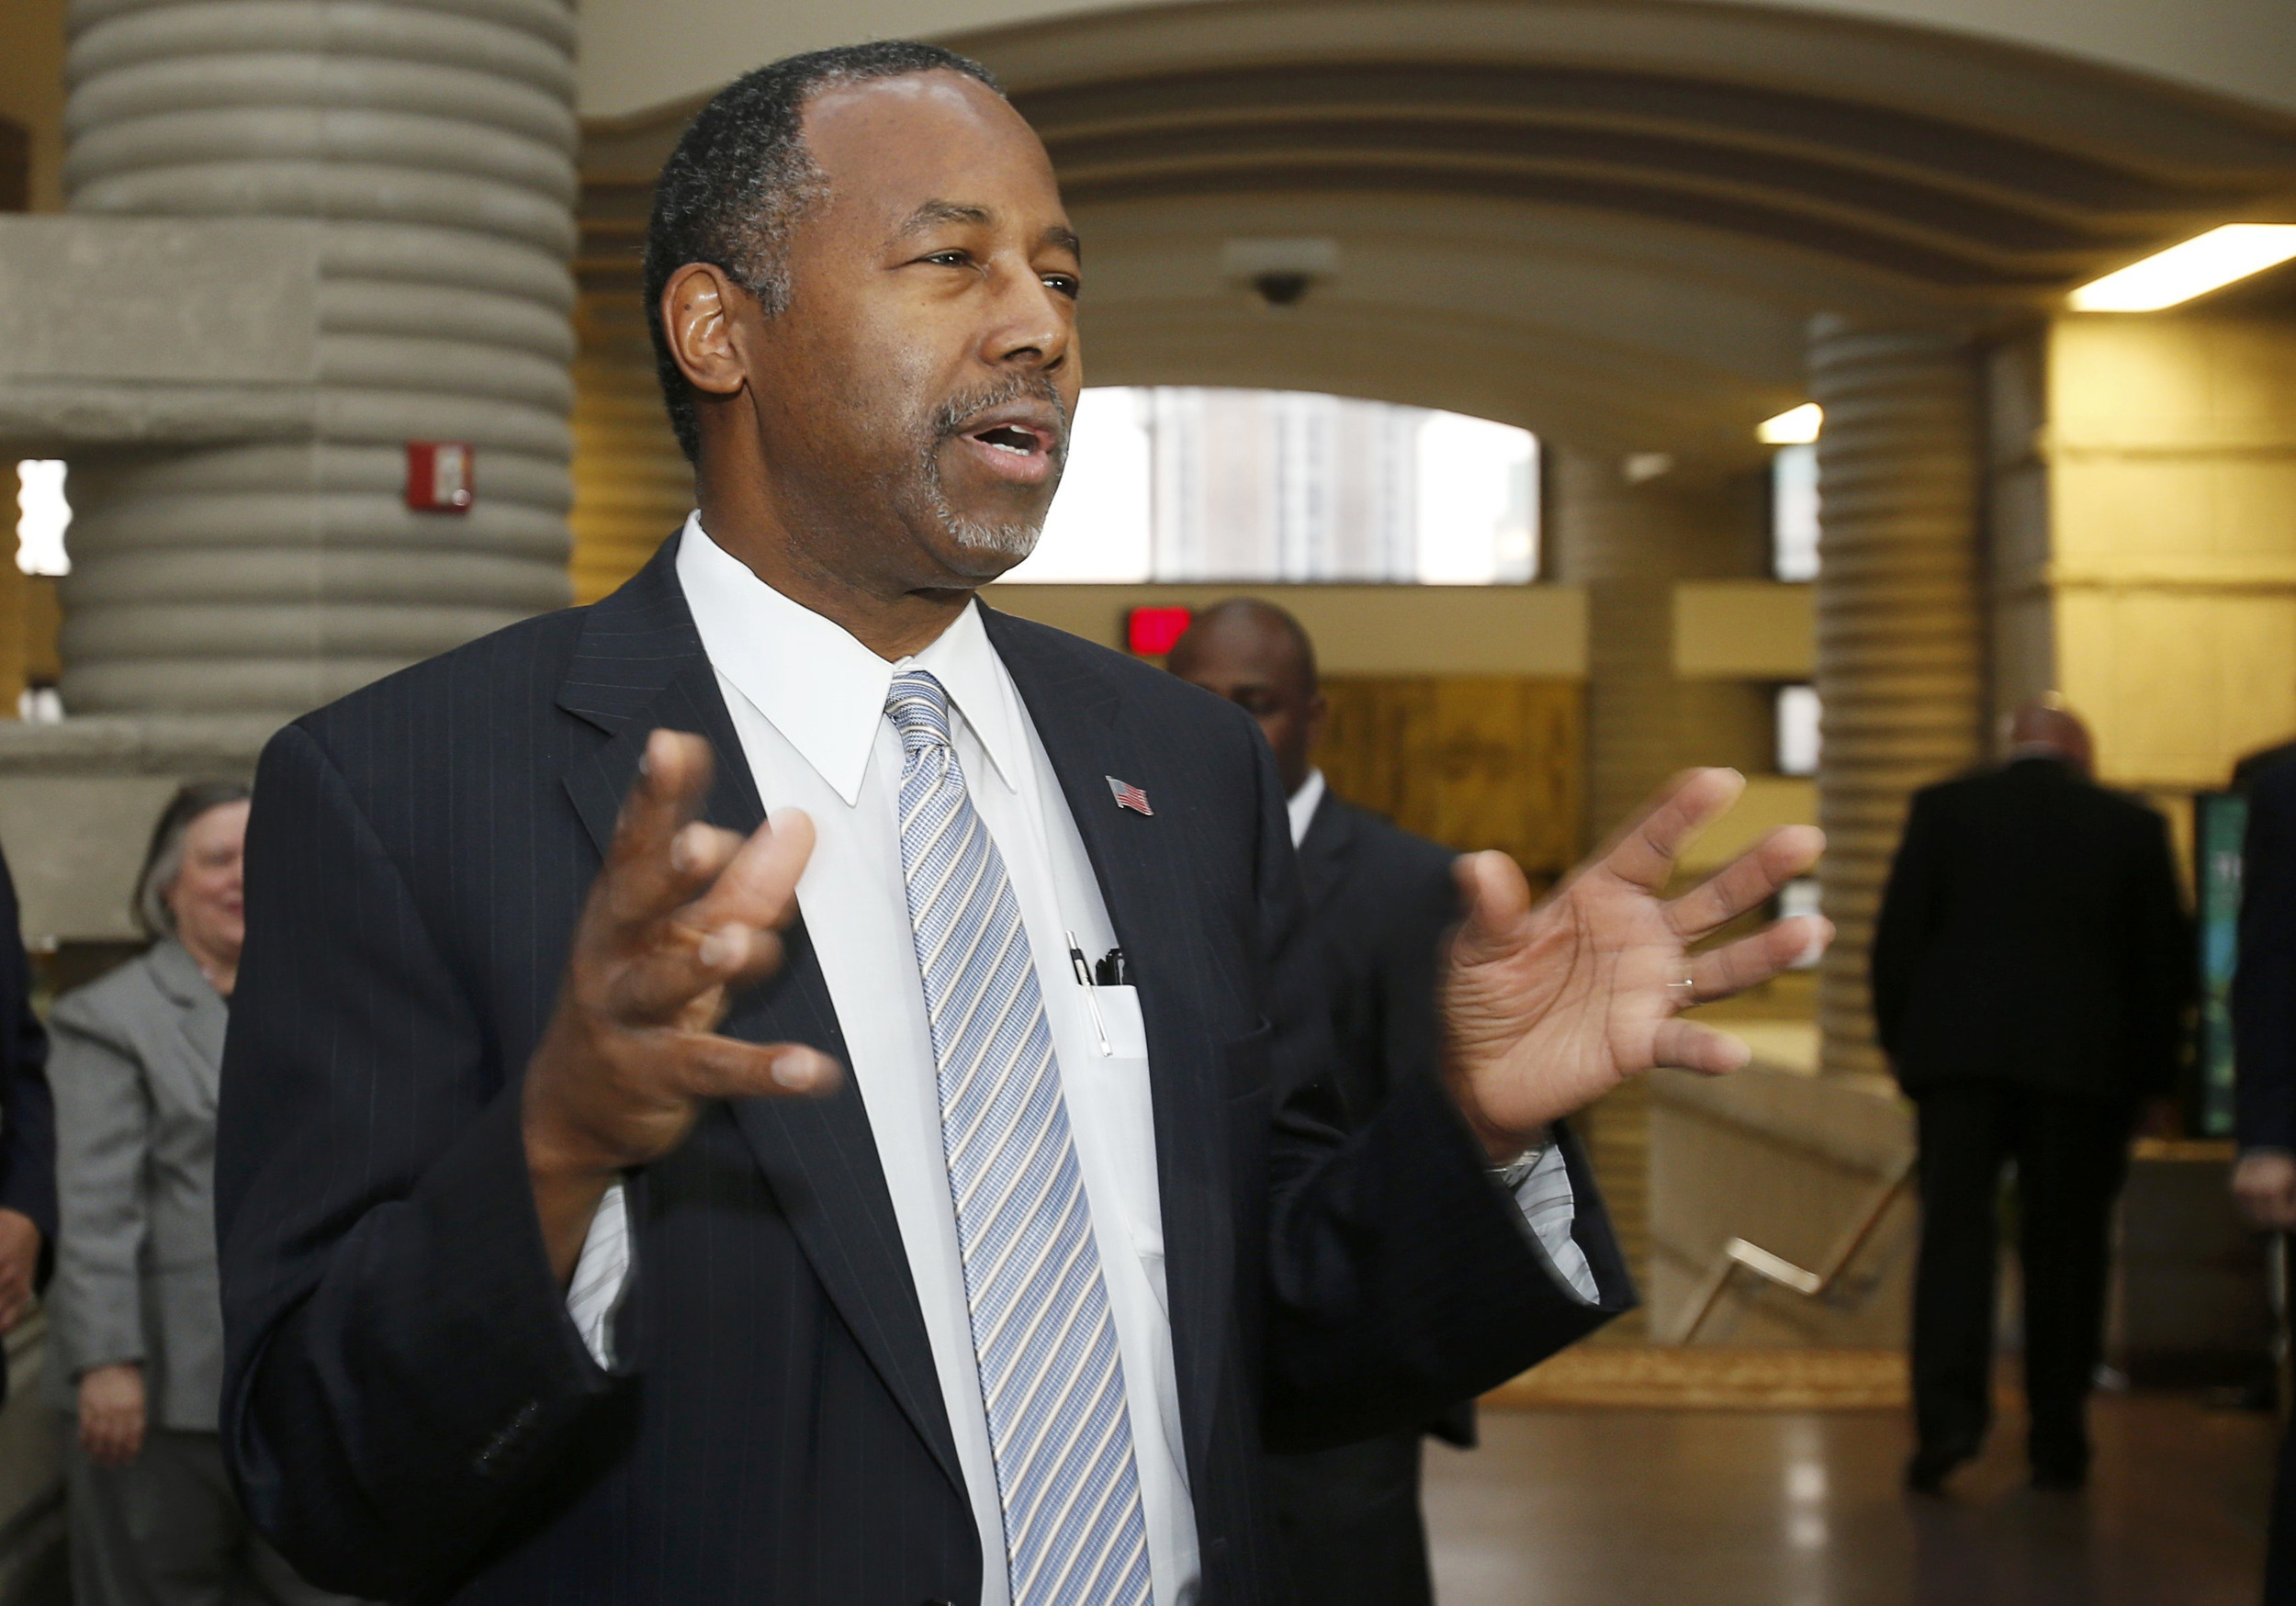 Image: Repubican presidental candidate Ben Carson speaks to the media at the Charles H. Wright Museum of African American History in Detroit